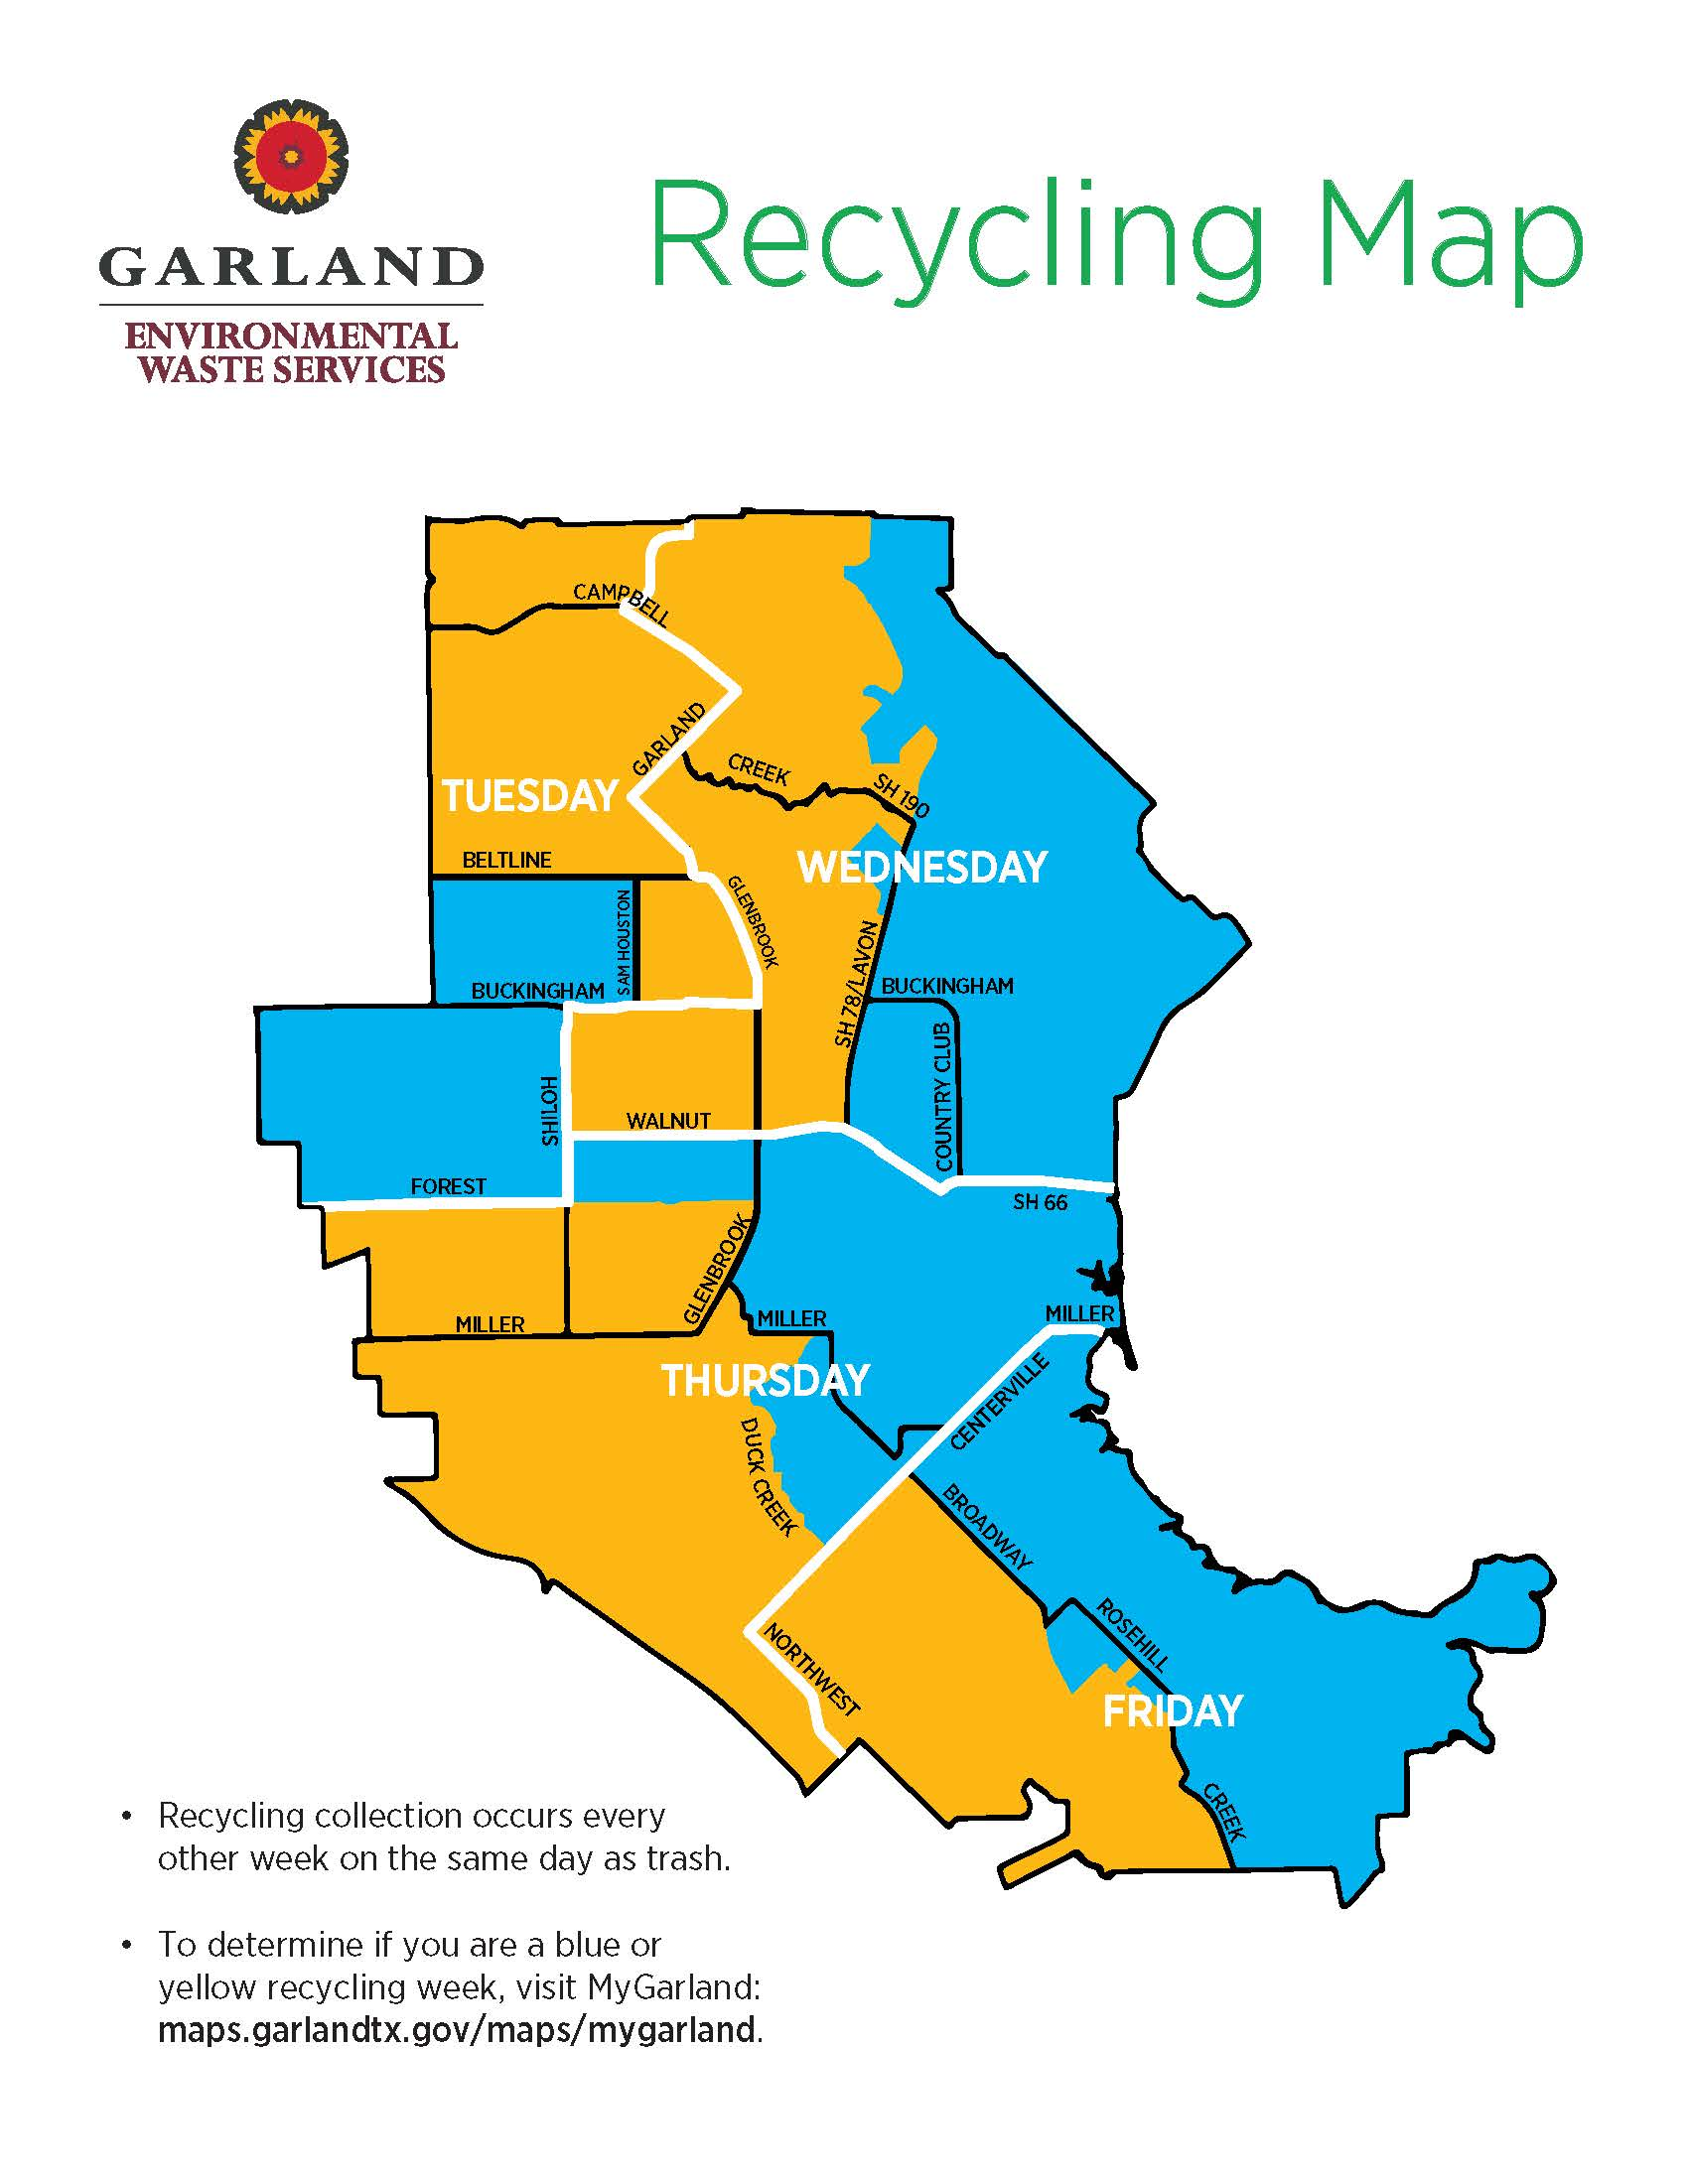 Garland recycling collection map with blue and yellow week zones.